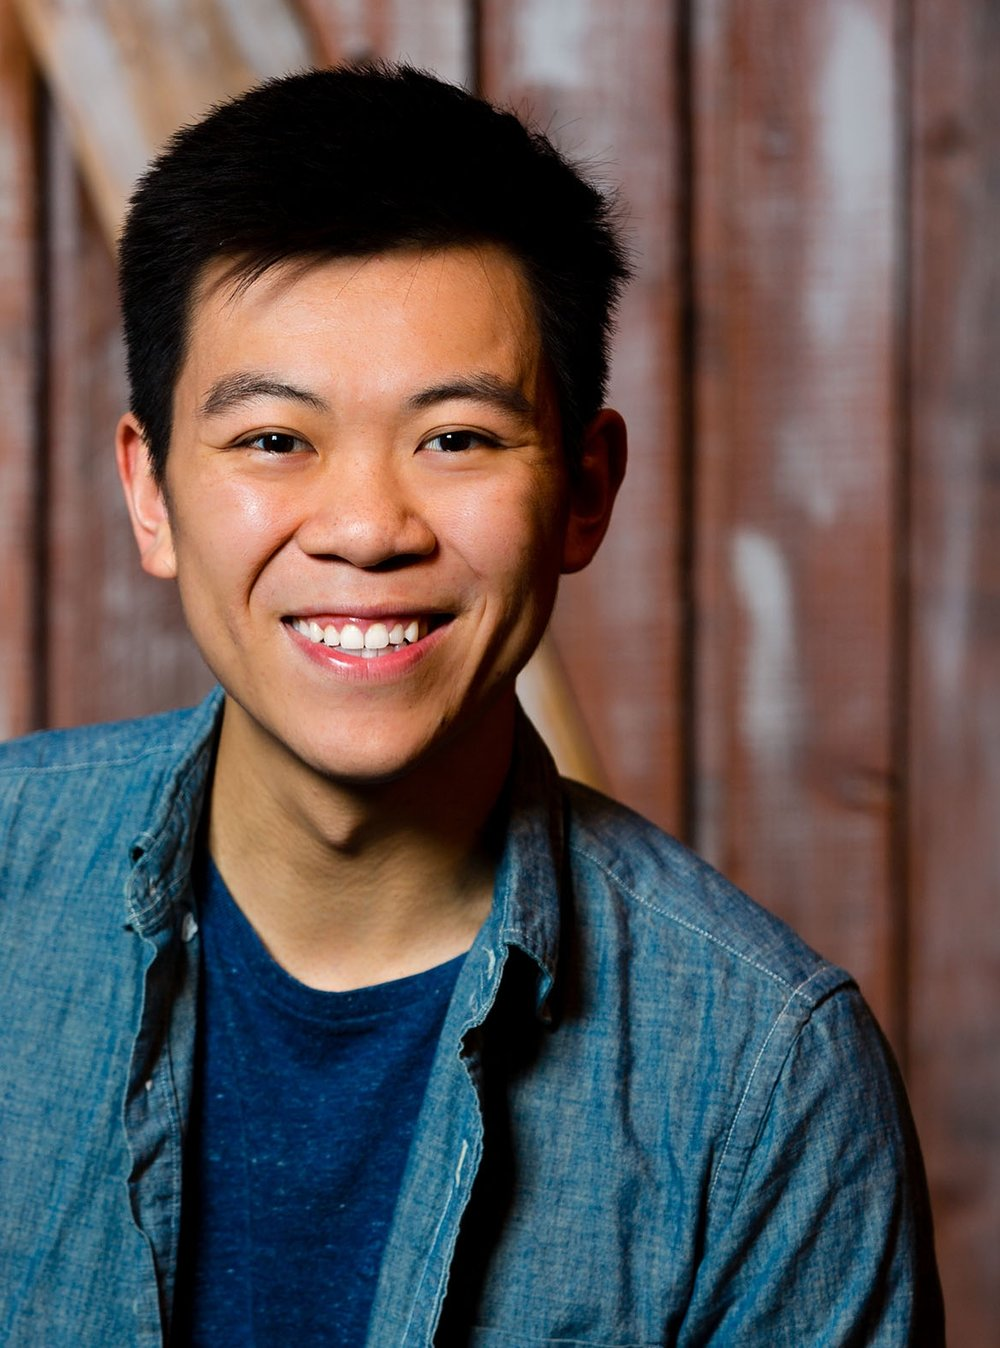 ANTHONY CHAN HEADSHOT.jpg